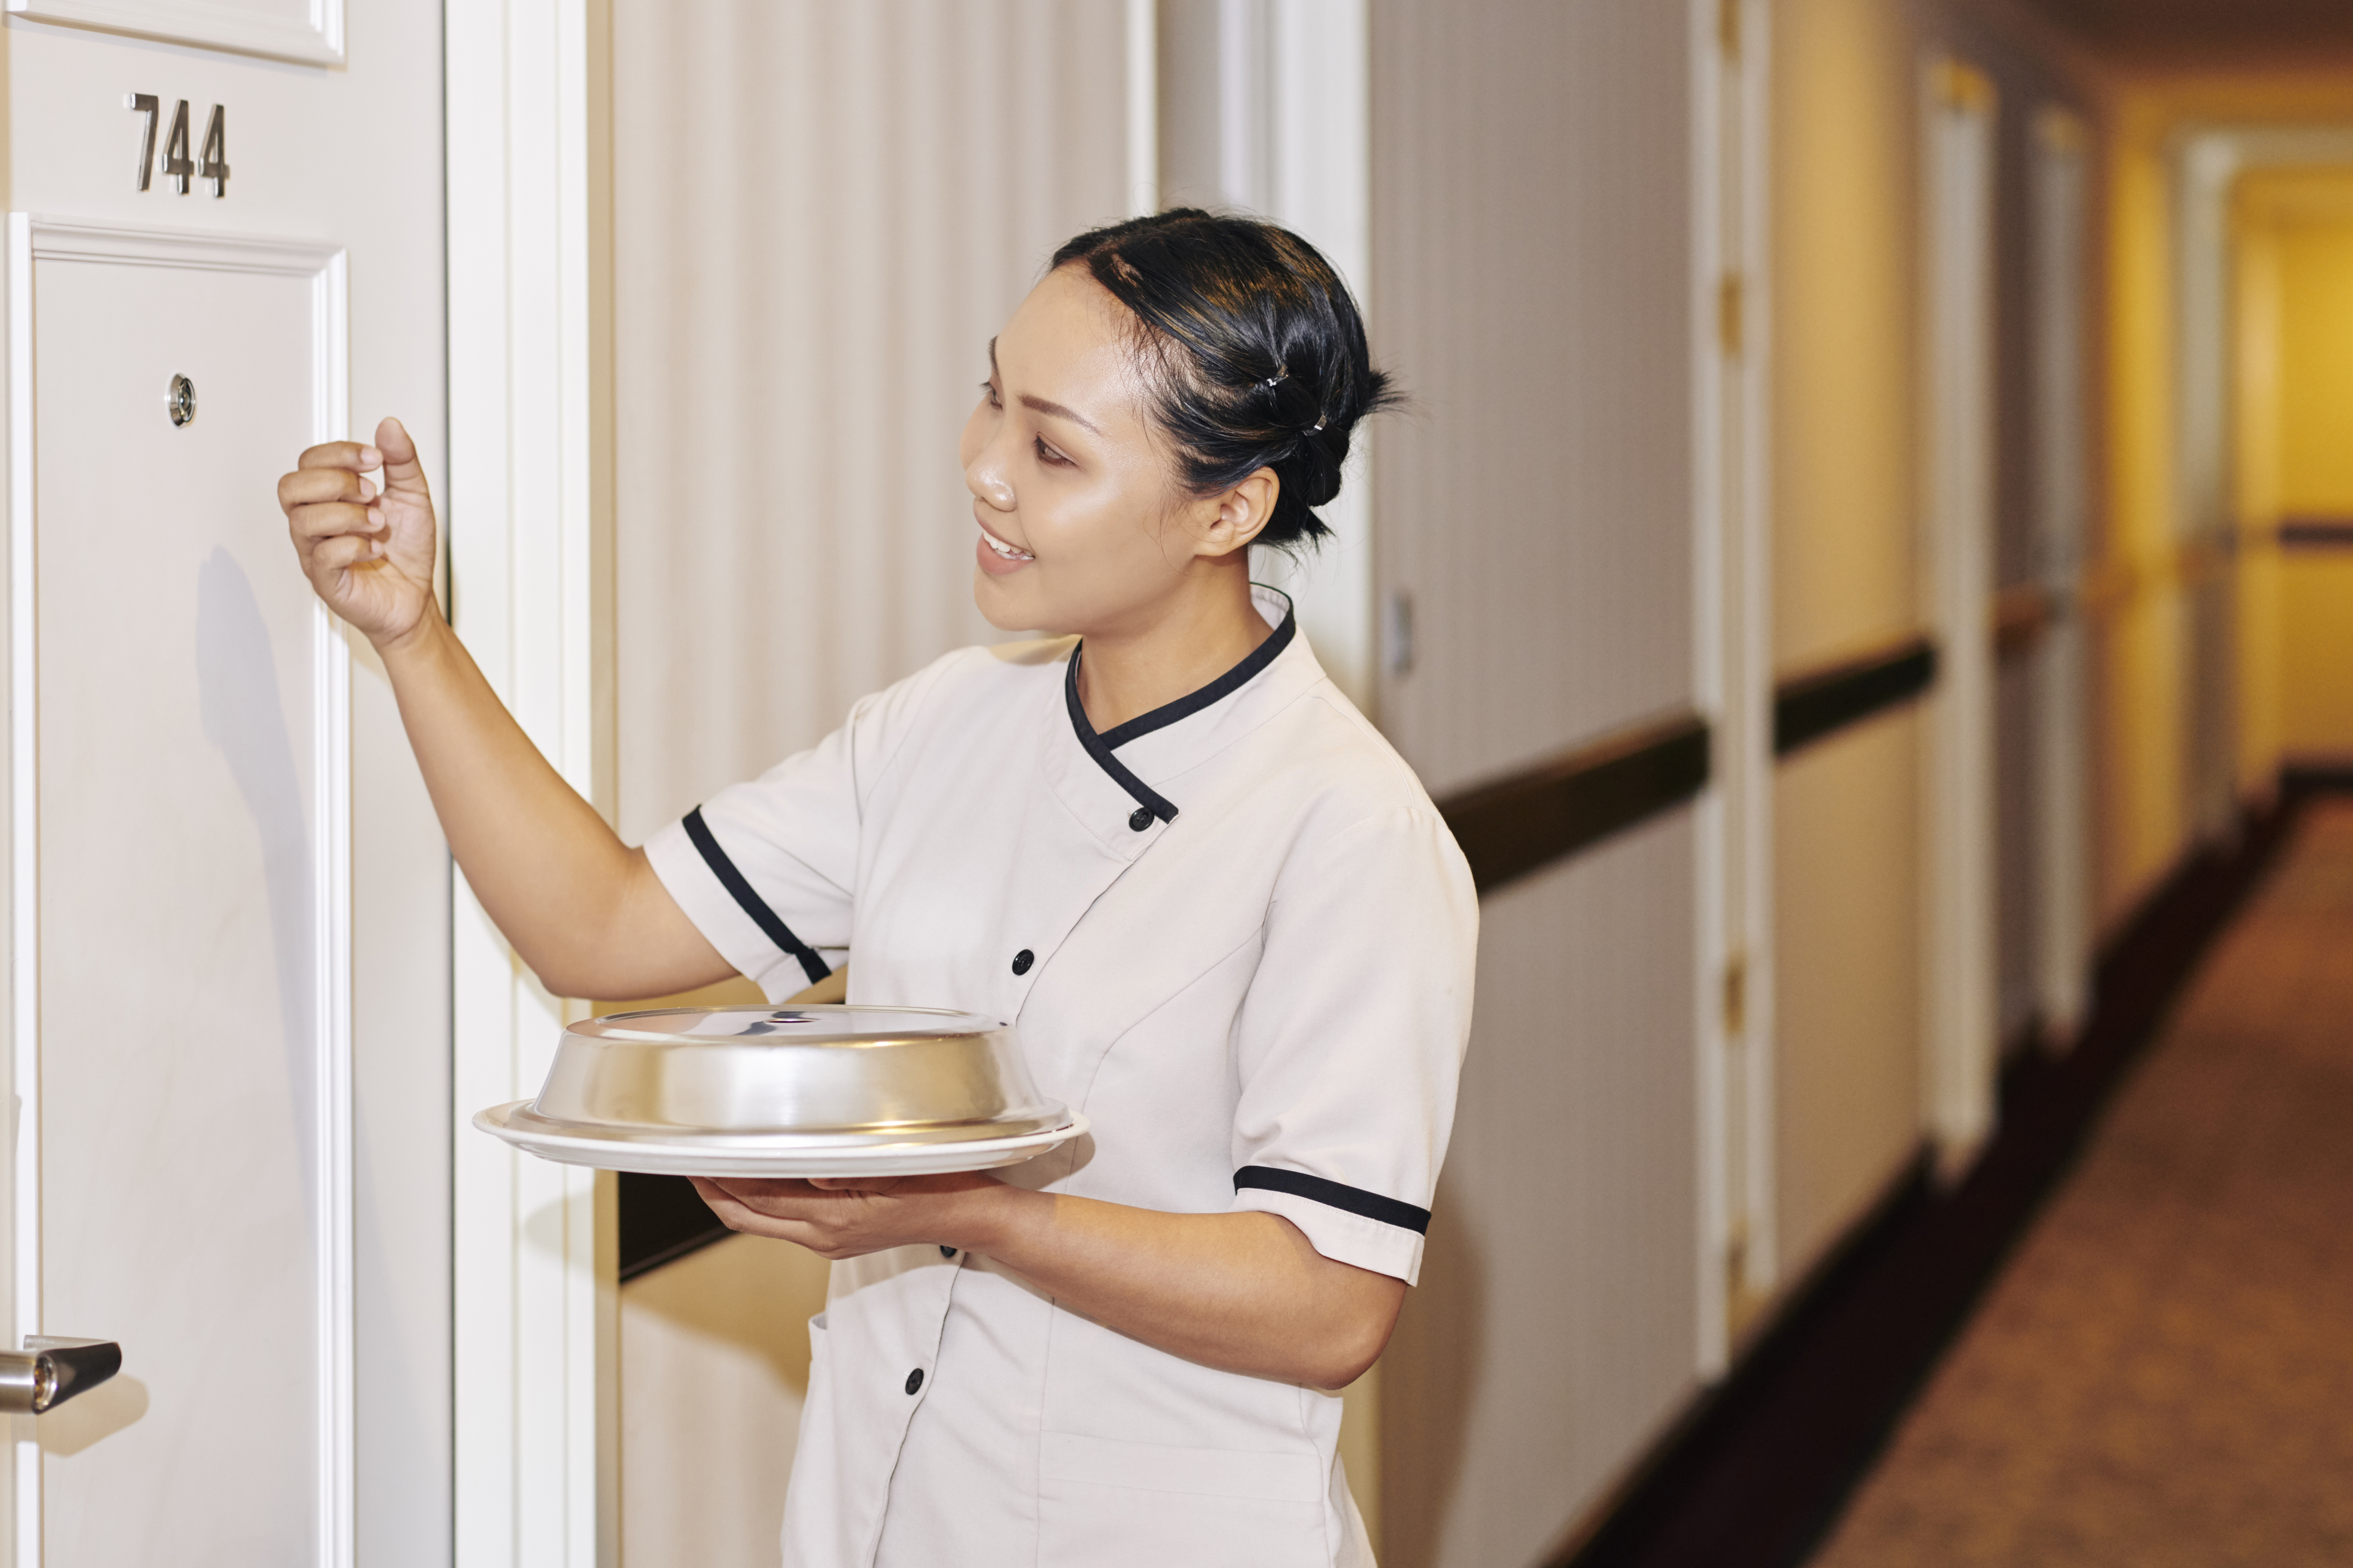 Room Service With a Smartphone